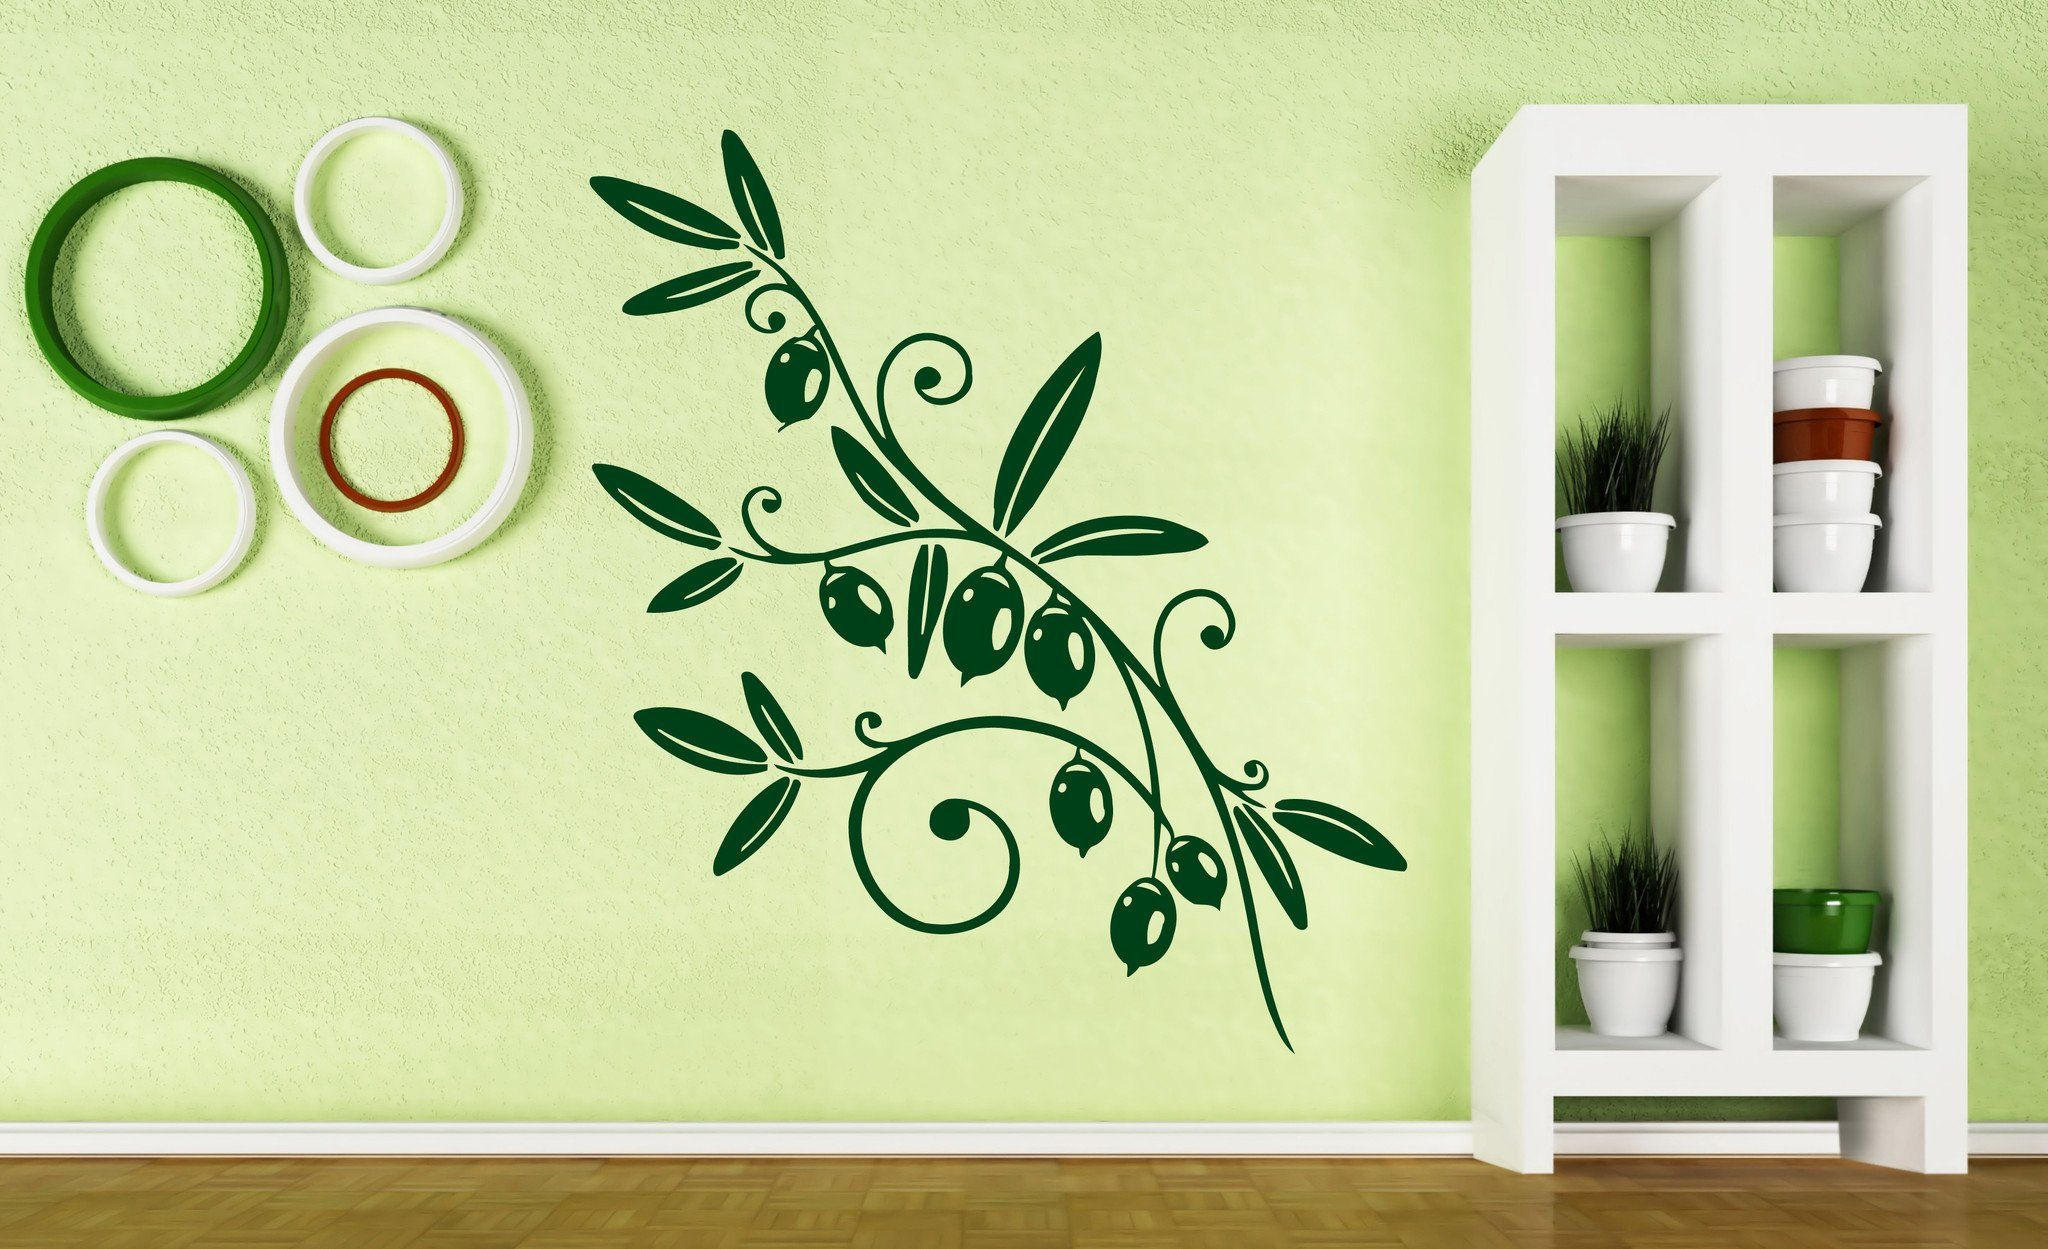 Outstanding Branches Wall Art Gallery - The Wall Art Decorations ...